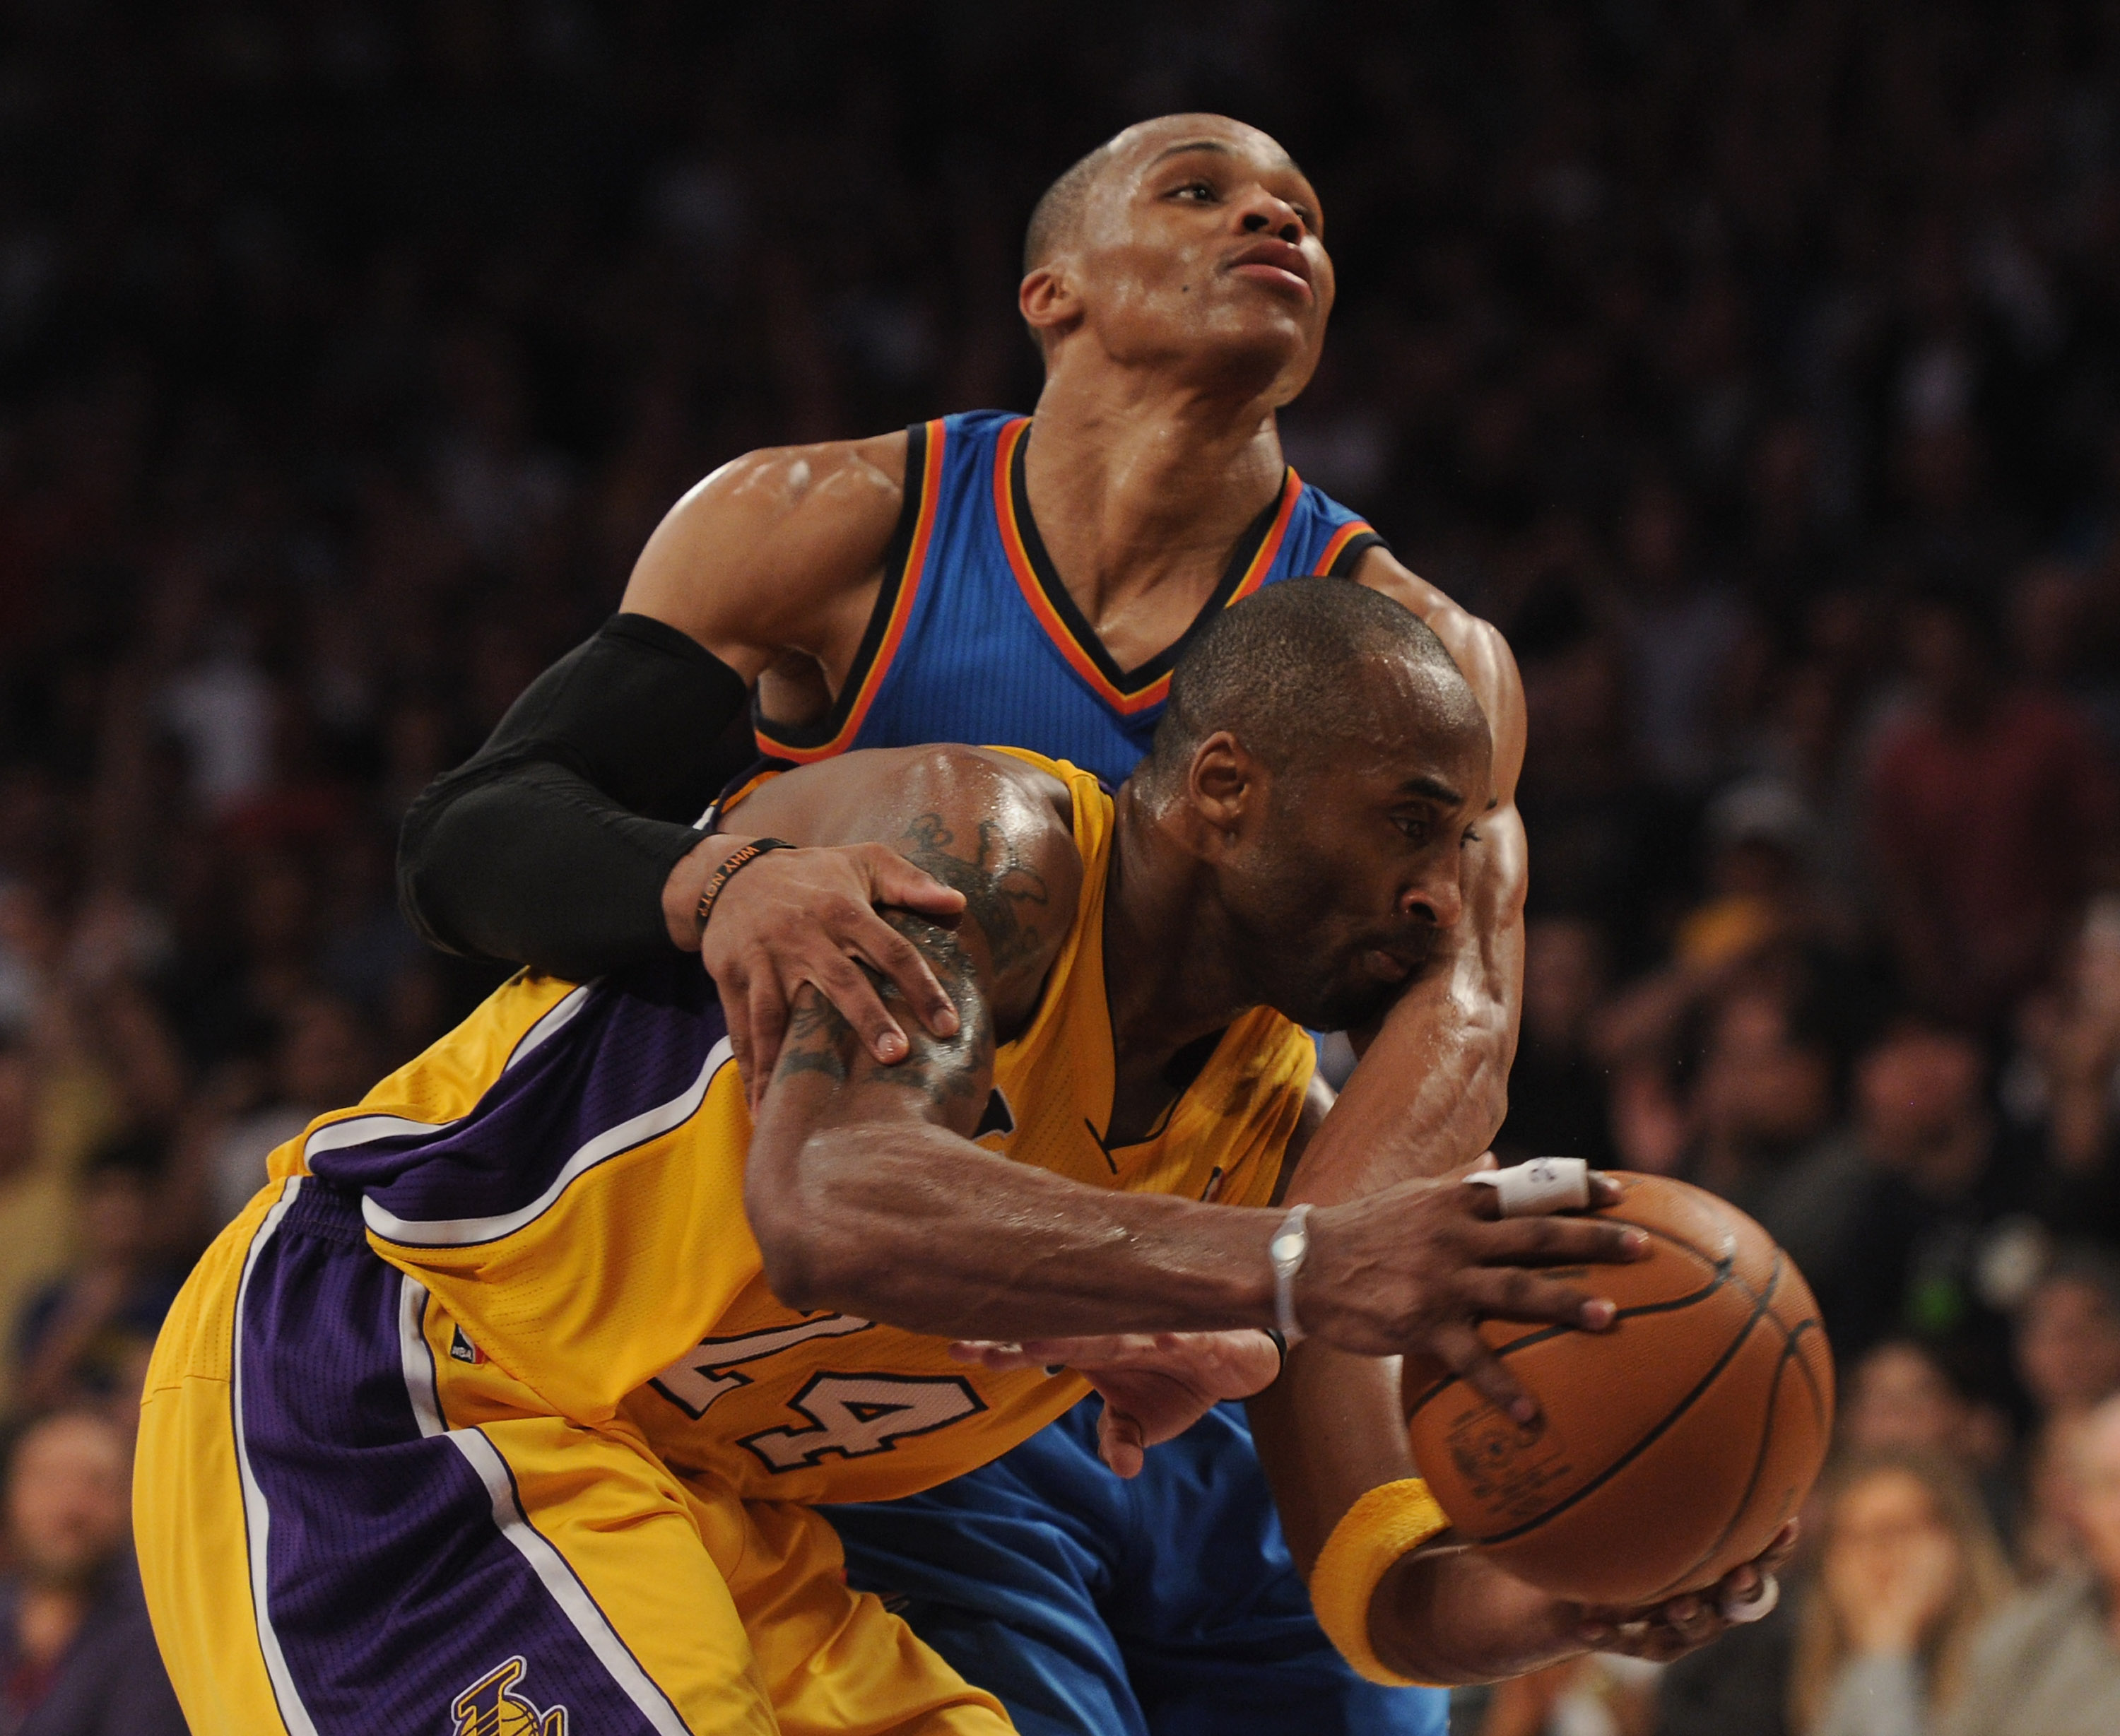 LOS ANGELES, CA - JANUARY 17:  Kobe Bryant #24 of the Los Angeles Lakers is fouled by Russell Westbrook #0 of the Oklahoma City Thunder during a 101-94 Laker win at the Staples Center on January 17, 2011 in Los Angeles, California.   NOTE TO USER: User ex